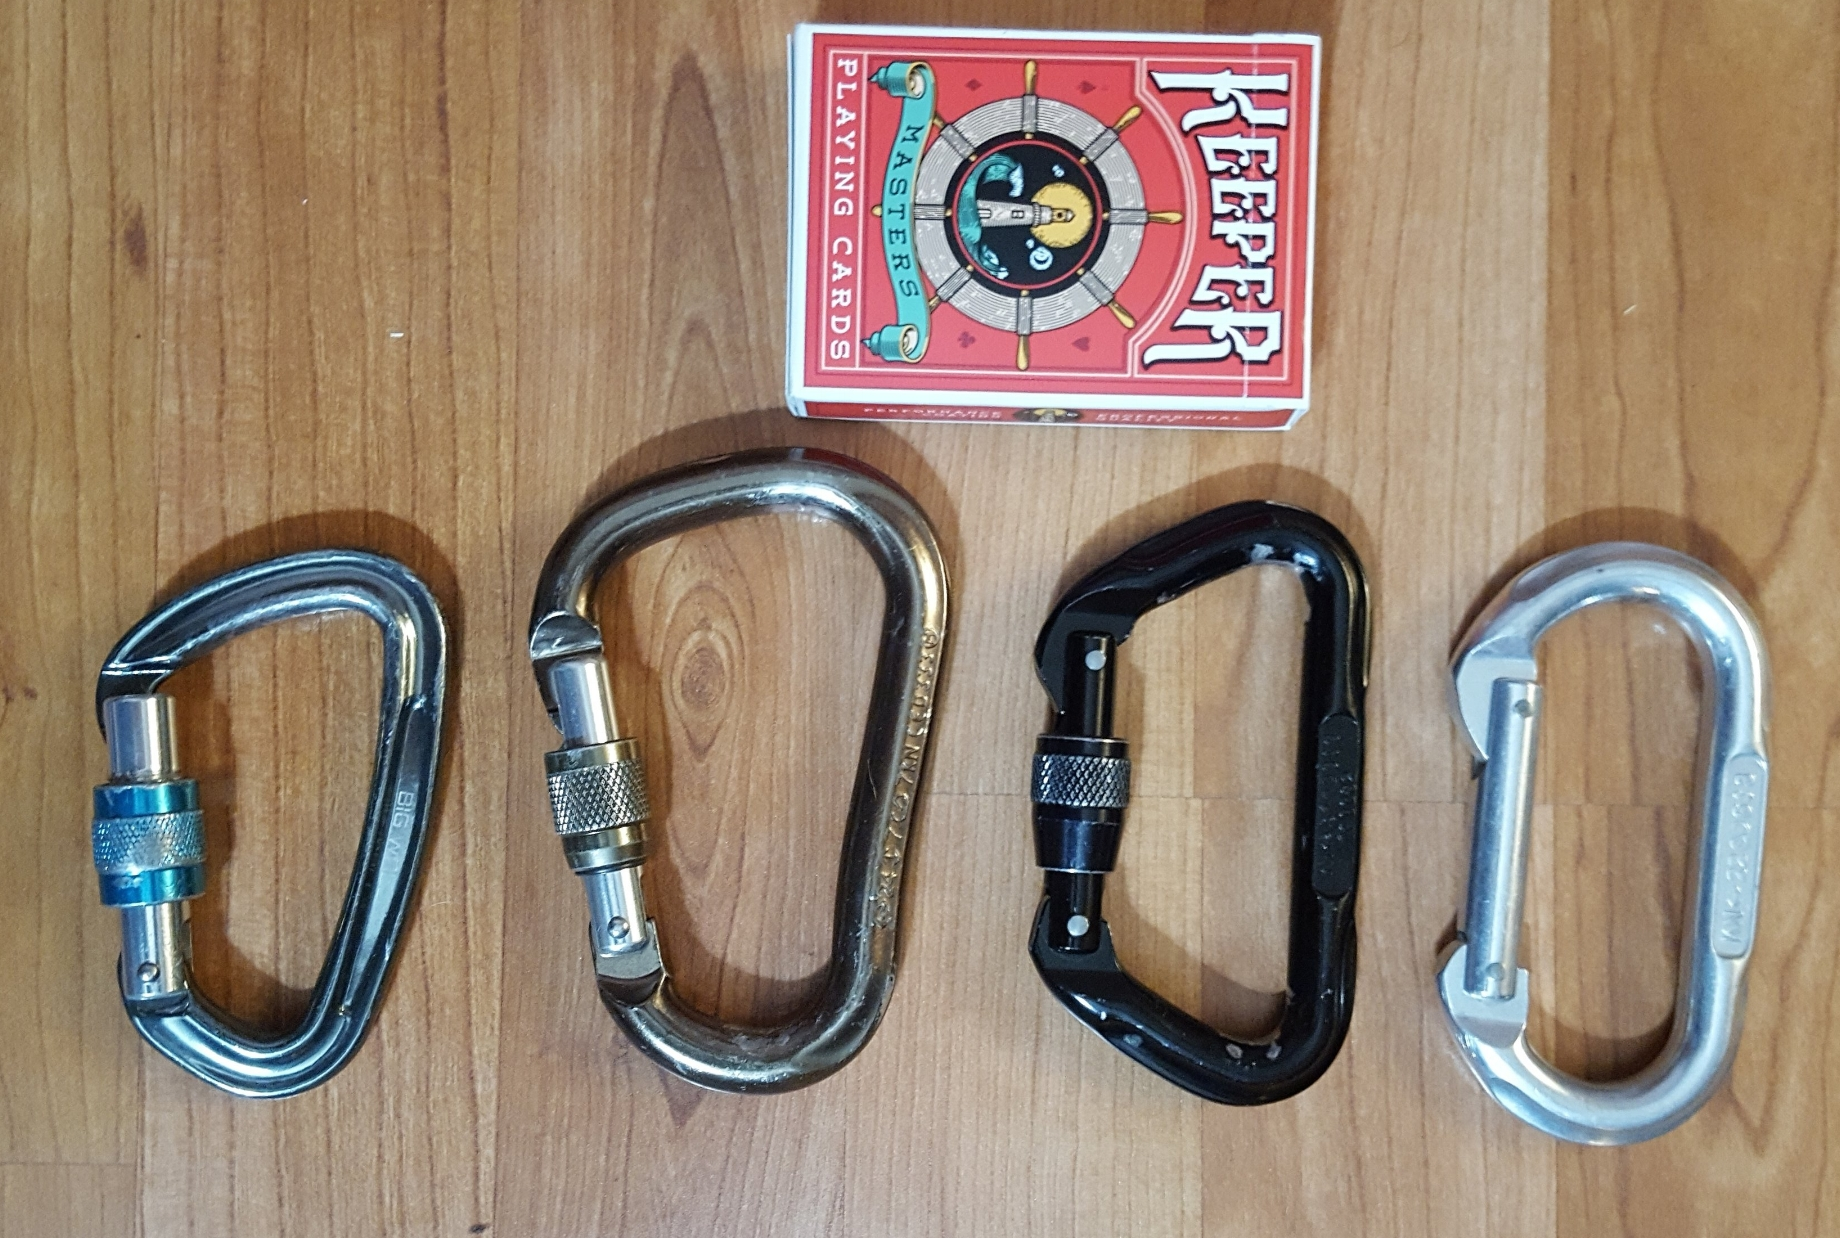 "Different sizes/shapes of carabiners (pack of cards for scale). From the left: 1) ""Big Wall Traverse"" brand small pear shaped screw gate carabiner. Not recommended for most applications as the smaller size and steeper slope makes your rope more likely to jam. 2) ""Black Diamond Rocklock"" pear shaped screw gate carabiner. Note the gentler slope than 1. This is the shape of carabiner I prefer for most applications. 3) D-shaped screw gate carabiner. Good for hanging your ring/spinner, not for much else. 4) Oval shaped carabiner without locking gate. Because it does not lock, this one is useful only for non-critical lines (although it is a climbing rated carabiner). Oval shaped carabiners (with locking gates!) are OK for hanging your points (but not as good as D-shaped carabiners) and OK for running pulleys with your rope (but not as good as pear-shaped carabiners)."